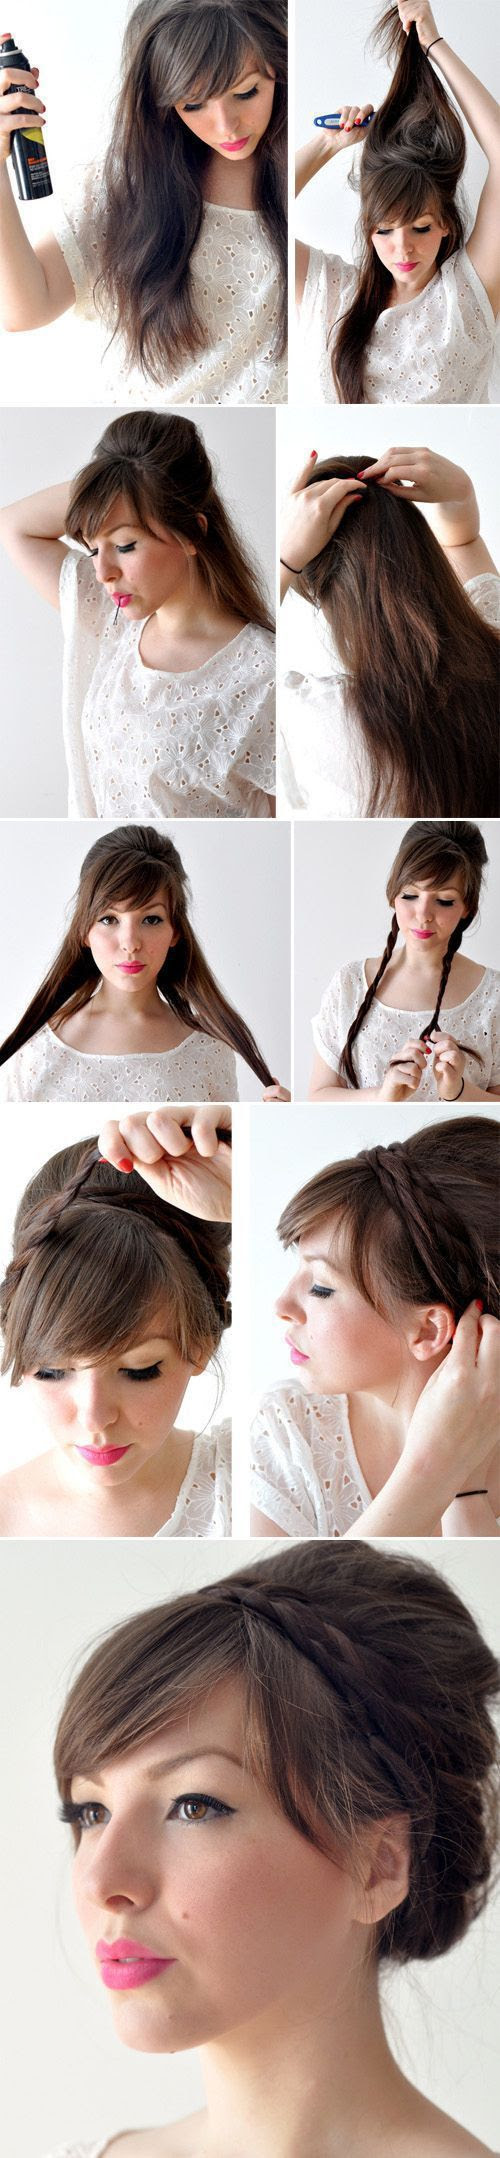 Easy Hairstyles For Short Hair To Do At Home Haircuts